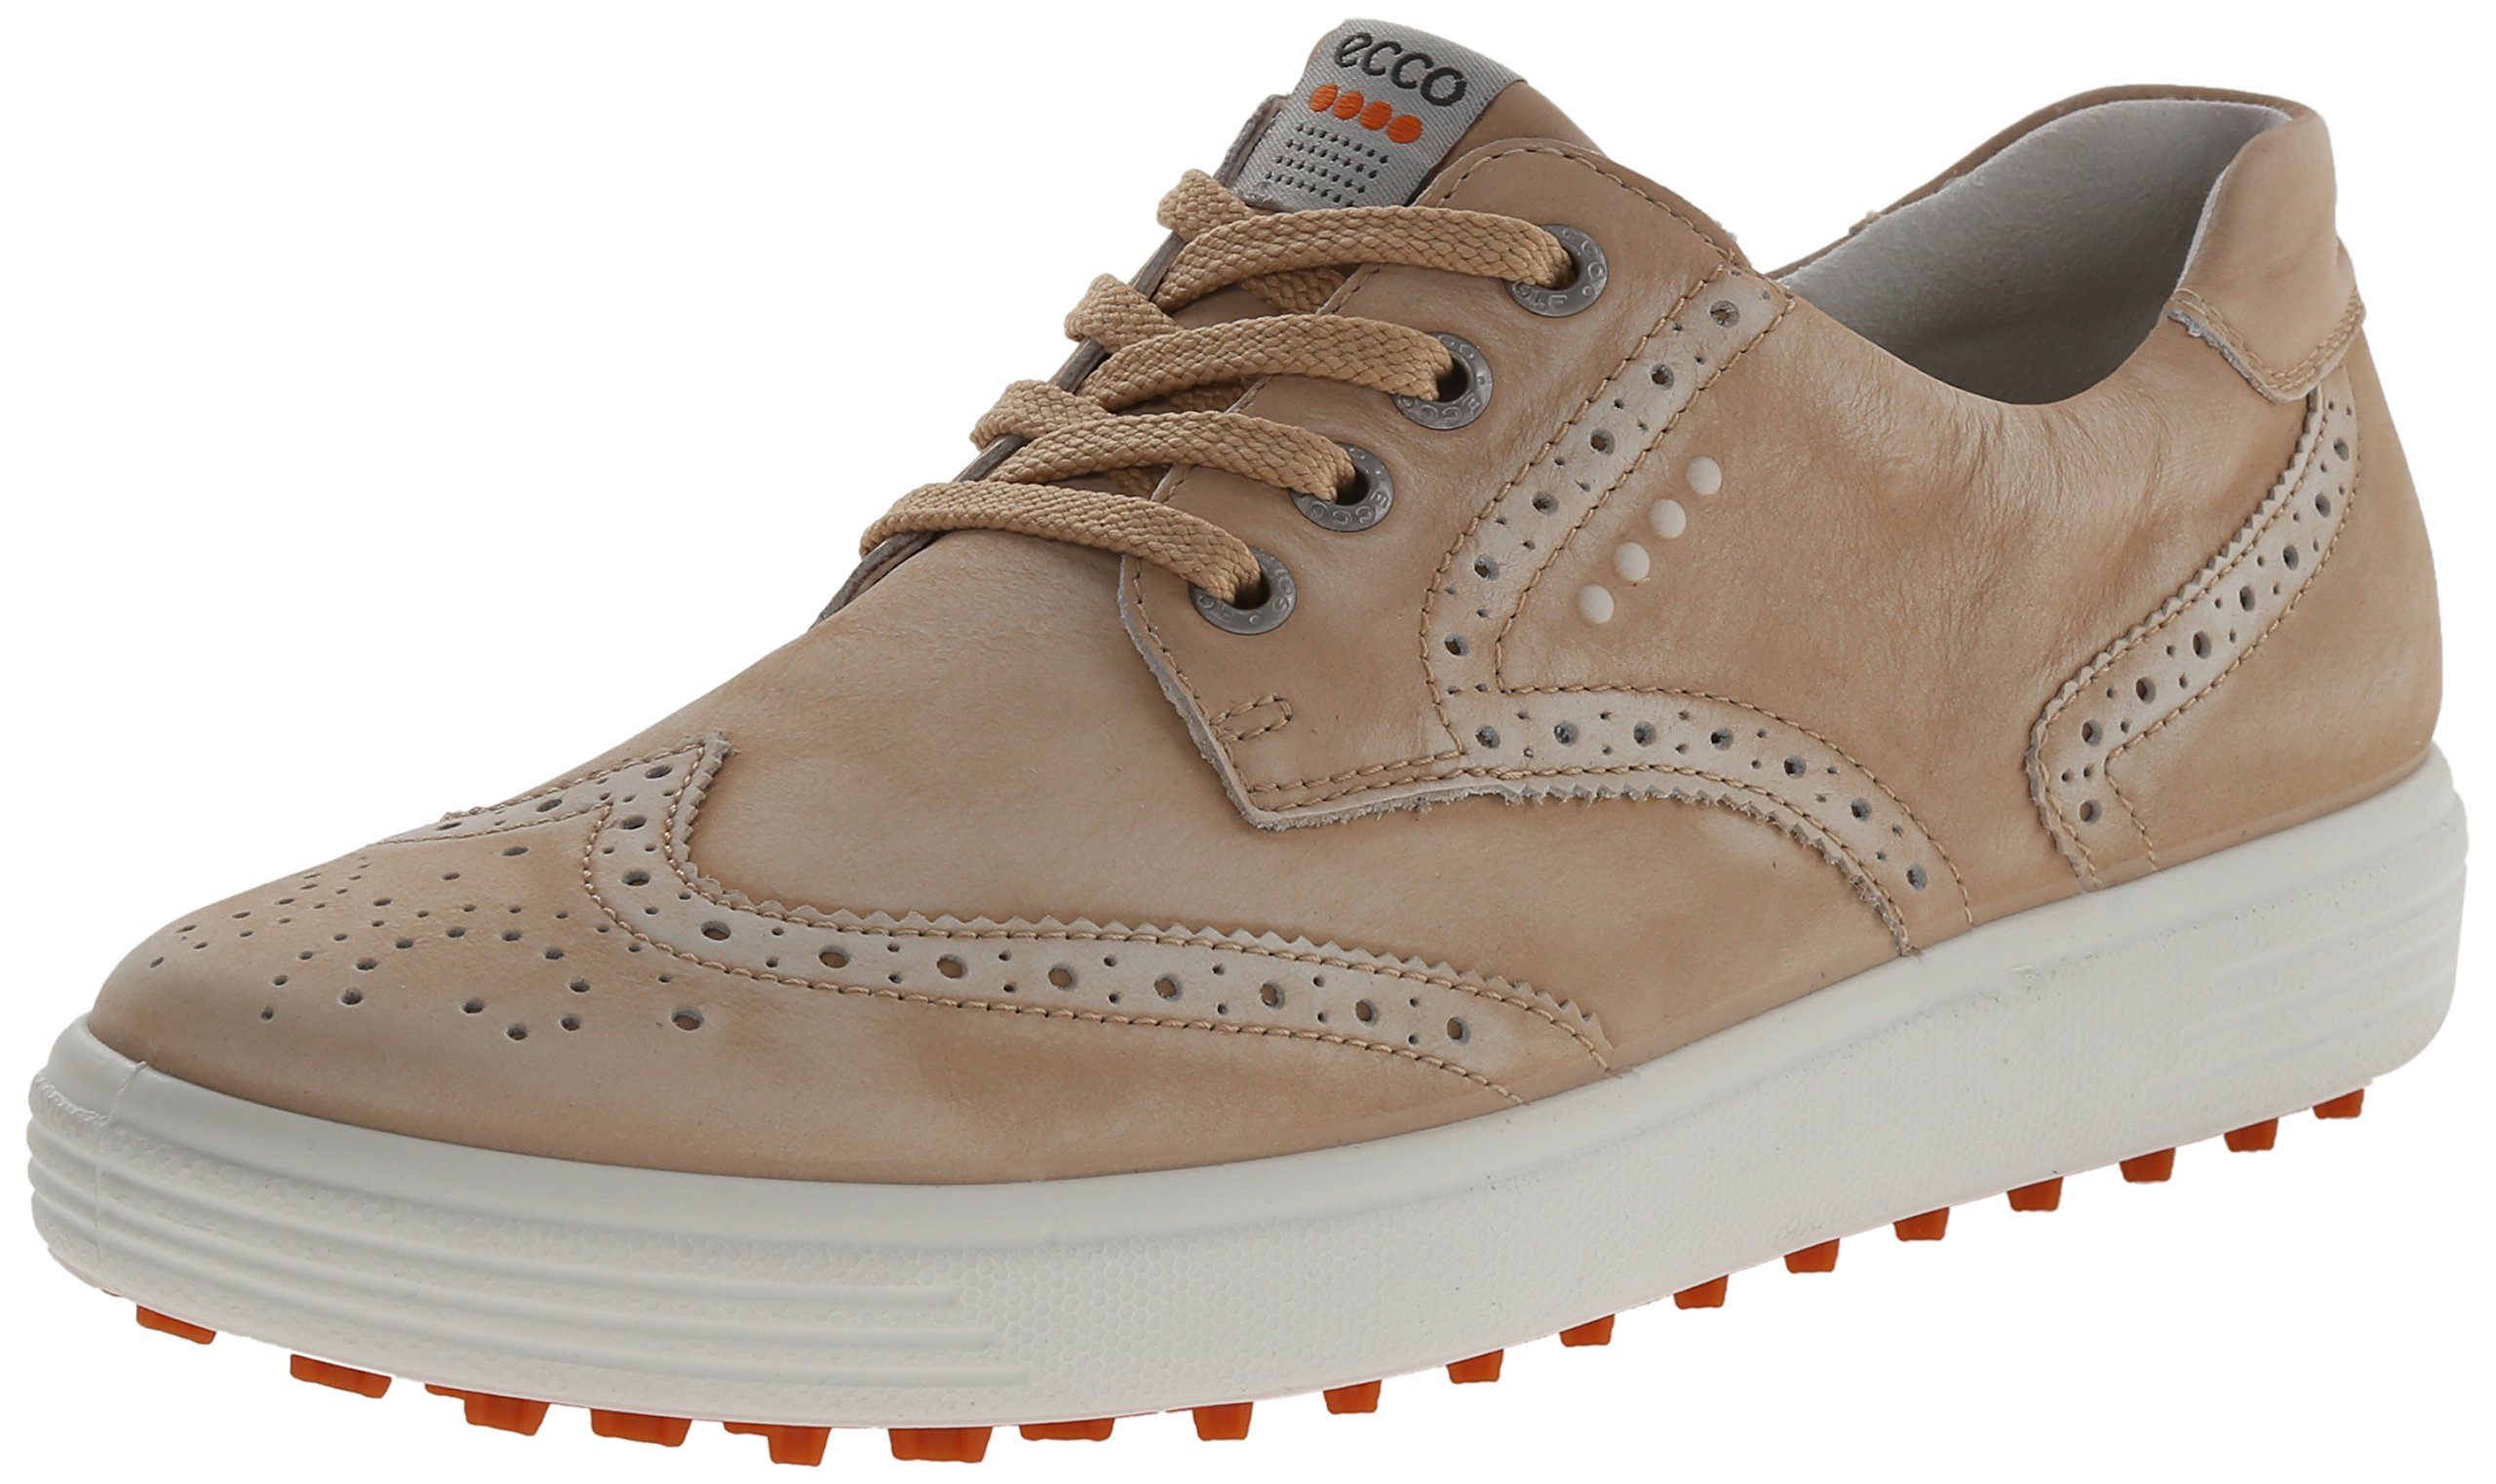 ECCO Women's Casual Hybrid Golf Shoe, Sesame, 36 EU/5-5.5 M US